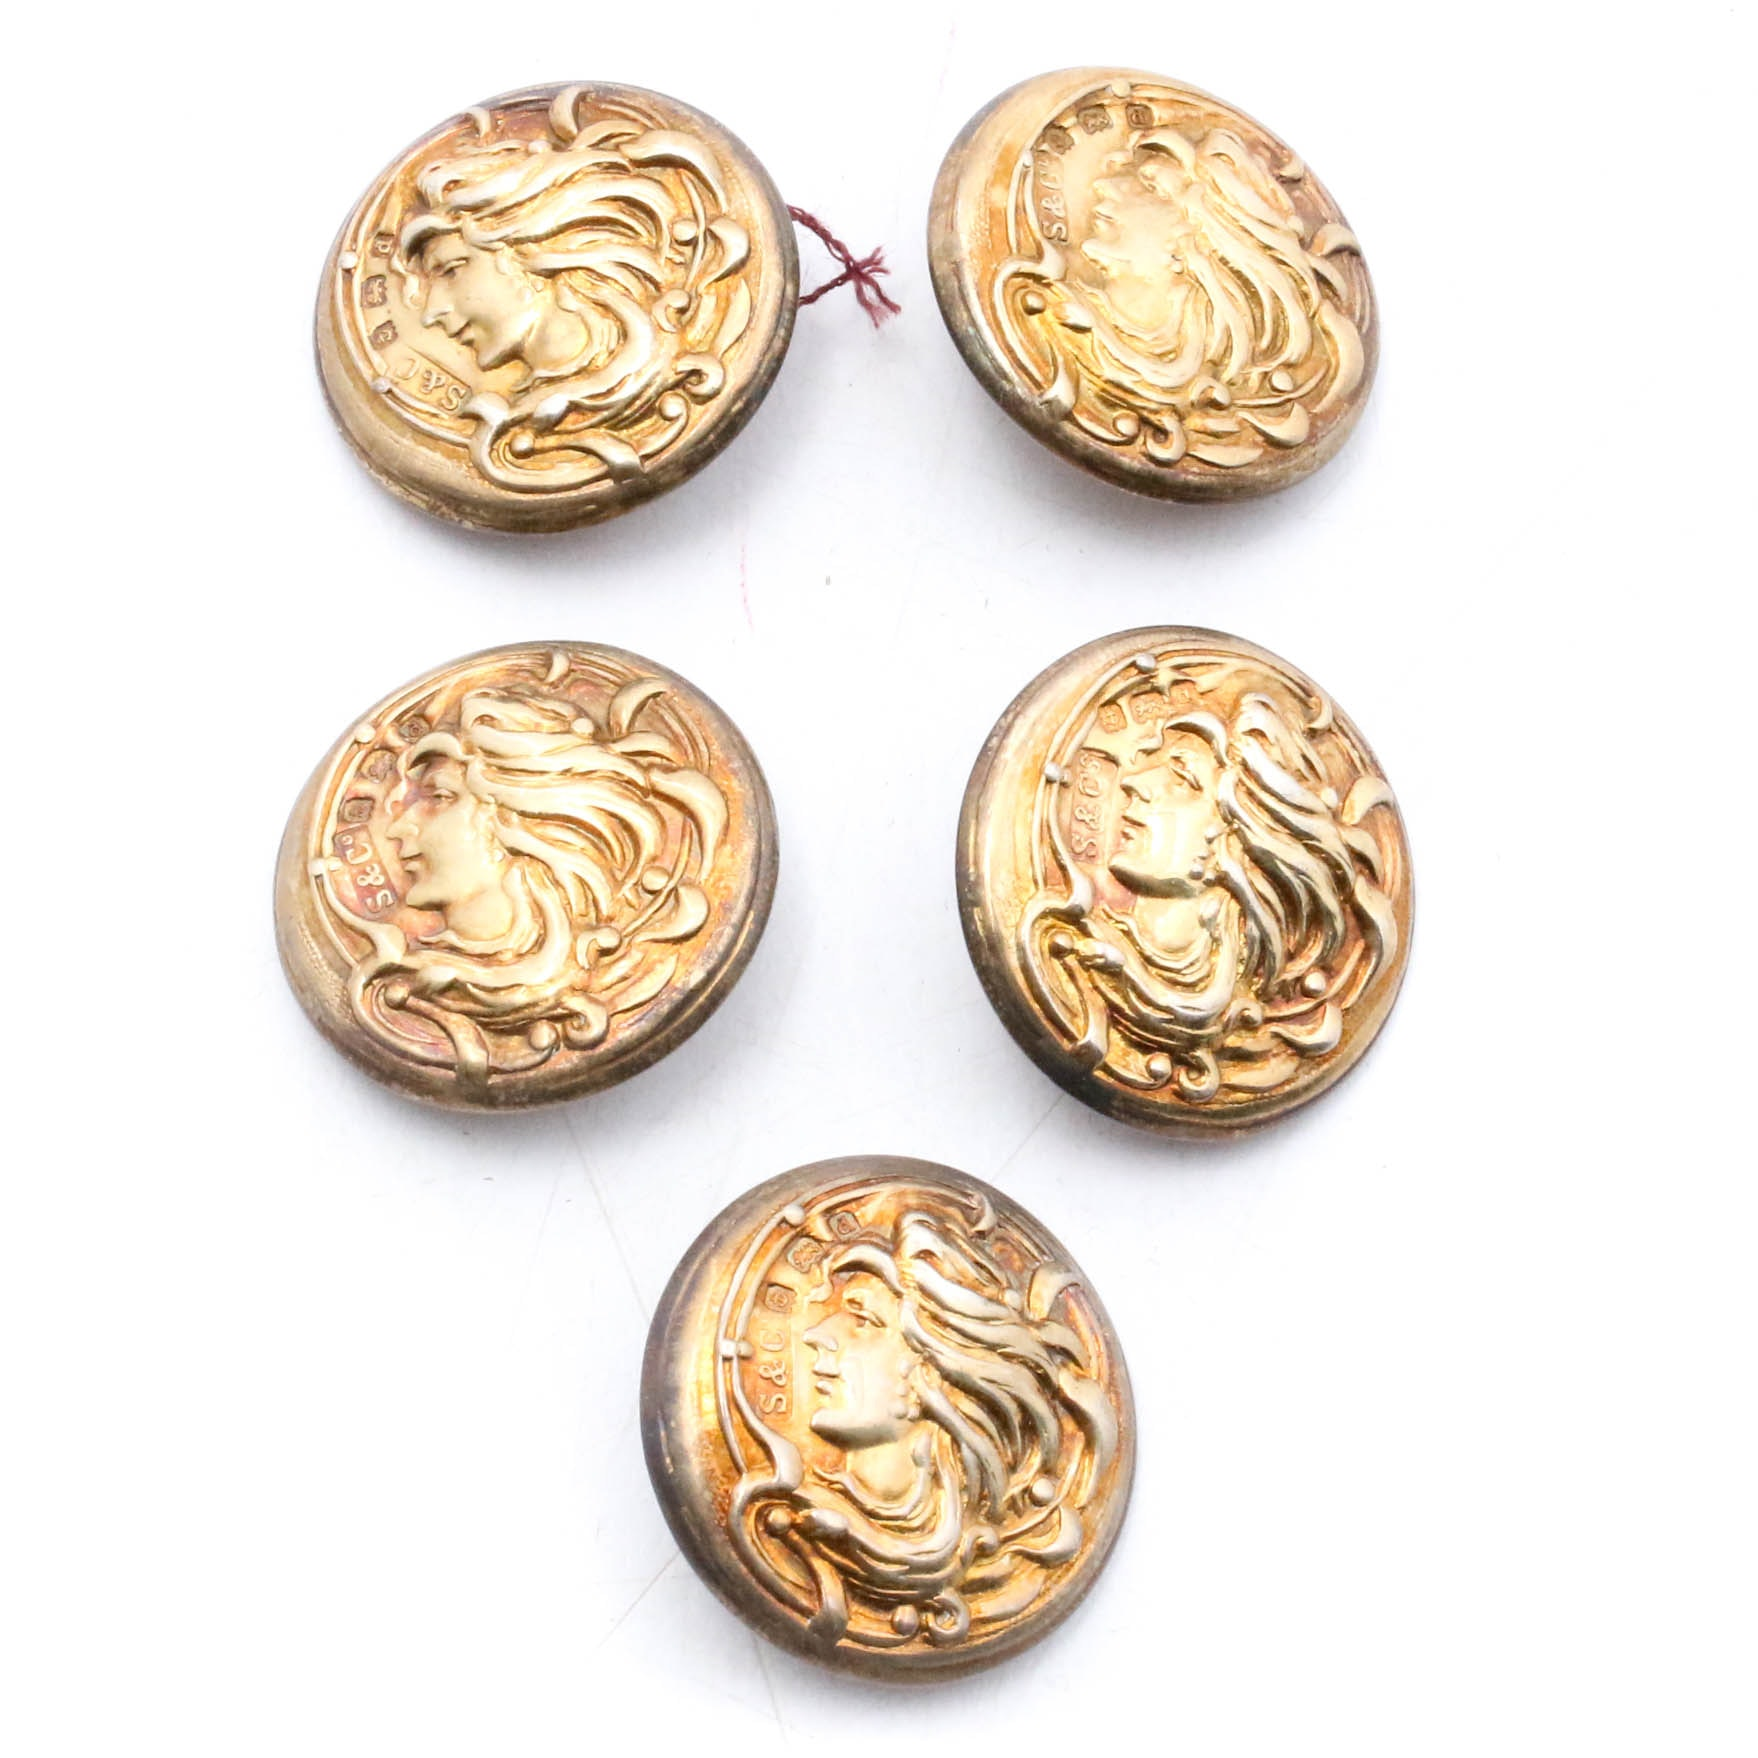 British Sterling Silver and Gold Wash Buttons, Early 20th Century